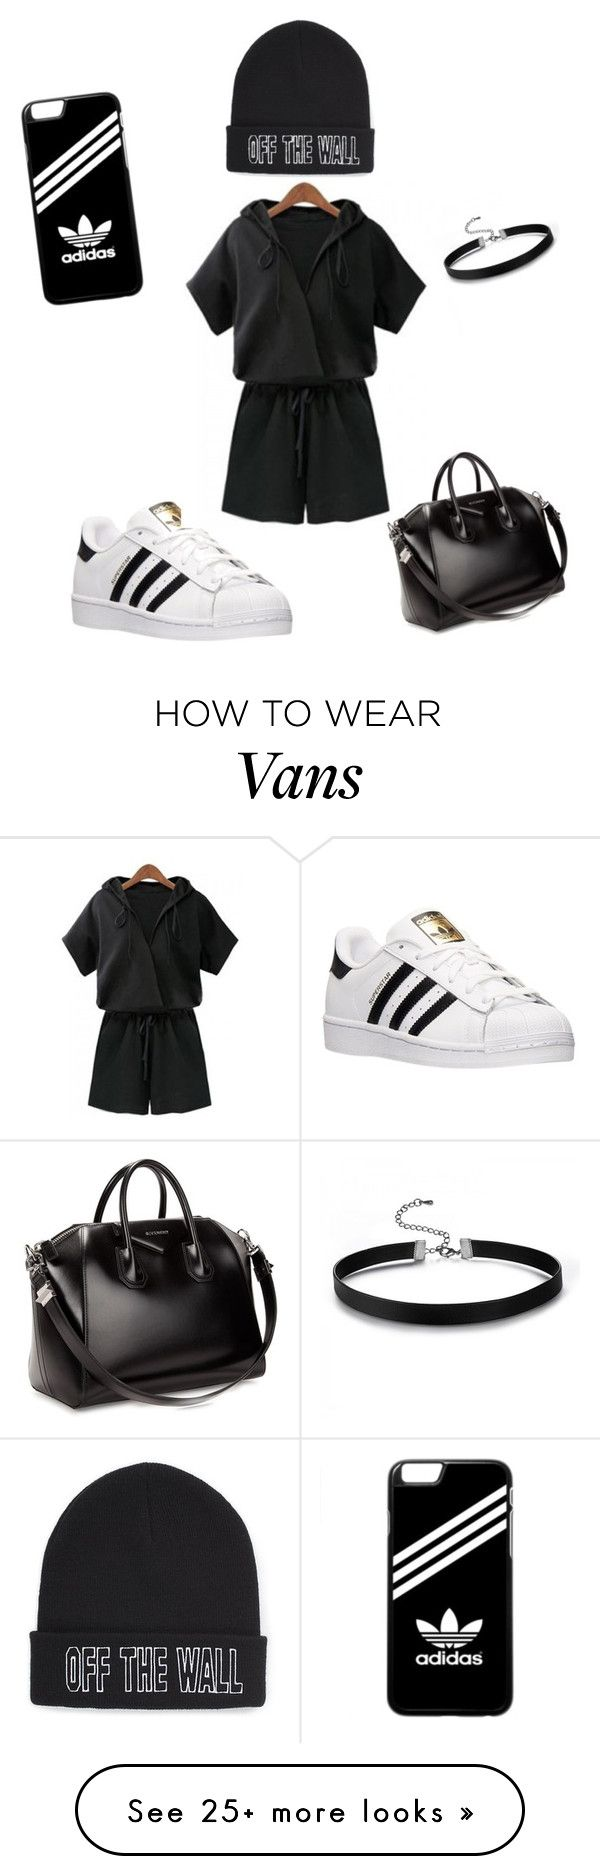 """Untitled #13"" by mm71028 on Polyvore featuring adidas, Givenchy and Vans"